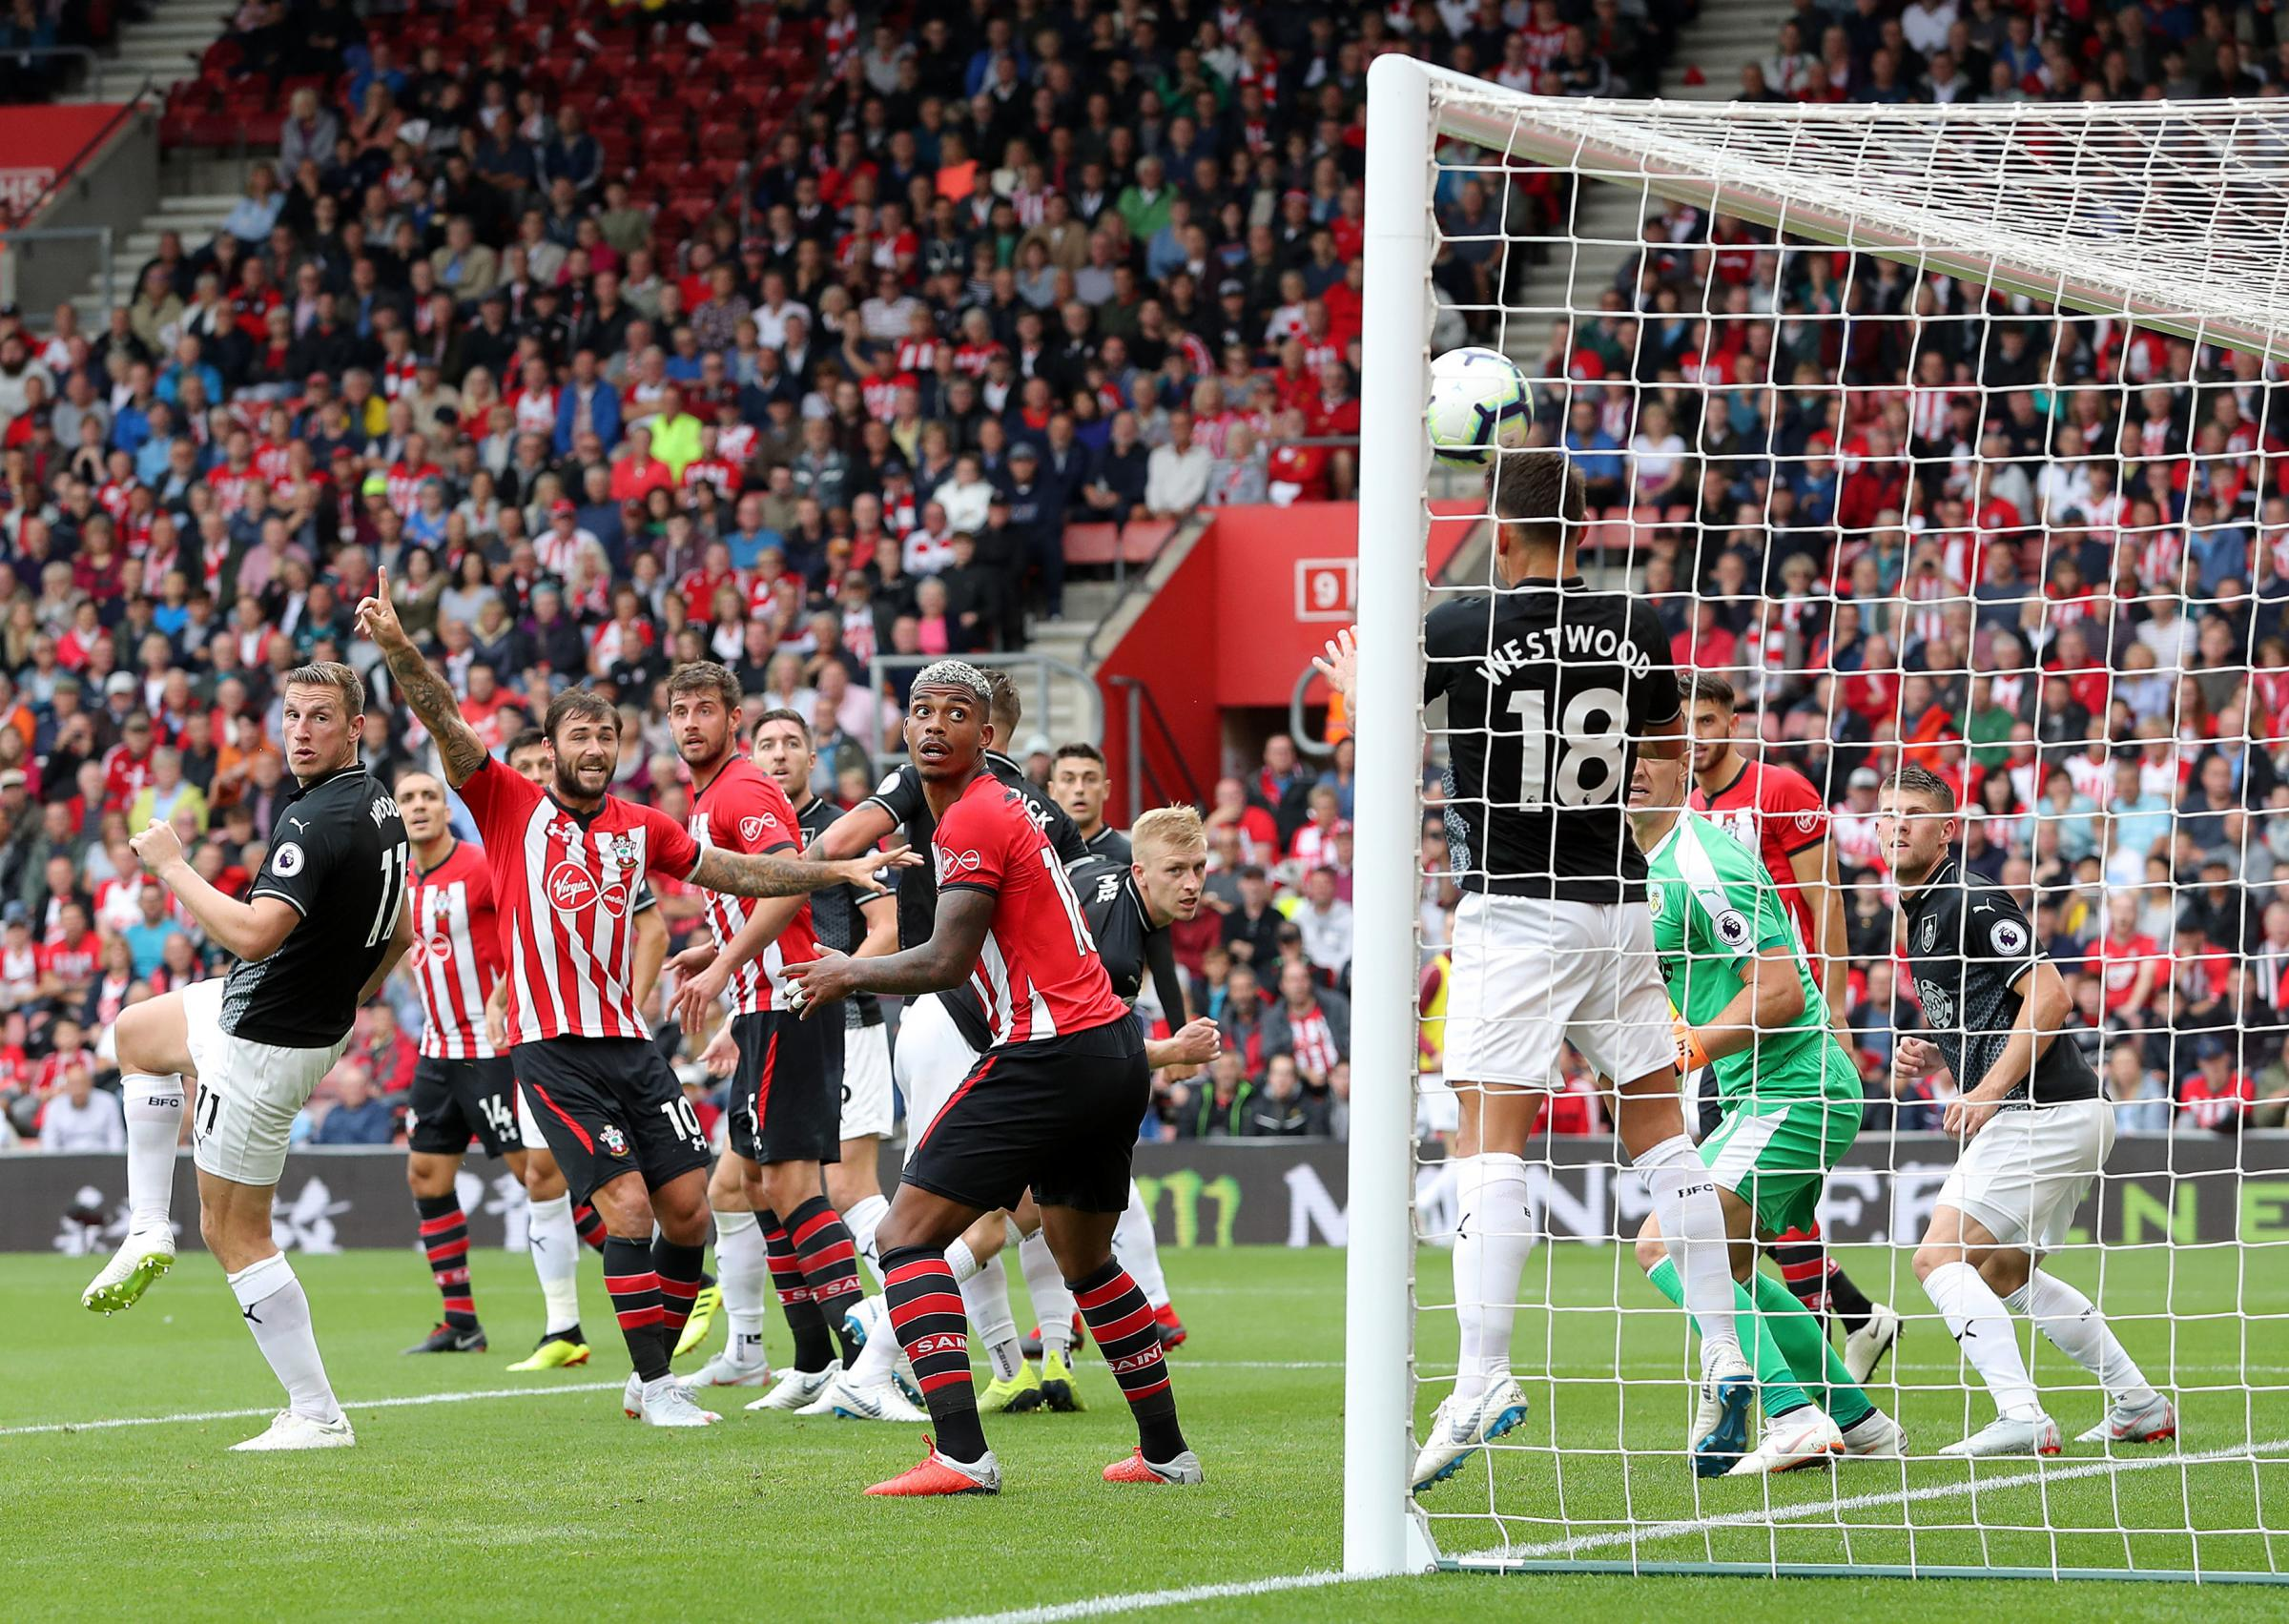 Burnley's Ashley Westwood clears off the goalline during the Premier League match at St Mary's, Southampton. PRESS ASSOCIATION Photo. Picture date: Sunday August 12, 2018. See PA story SOCCER Southampton. Photo credit should read: Andrew Matthews/